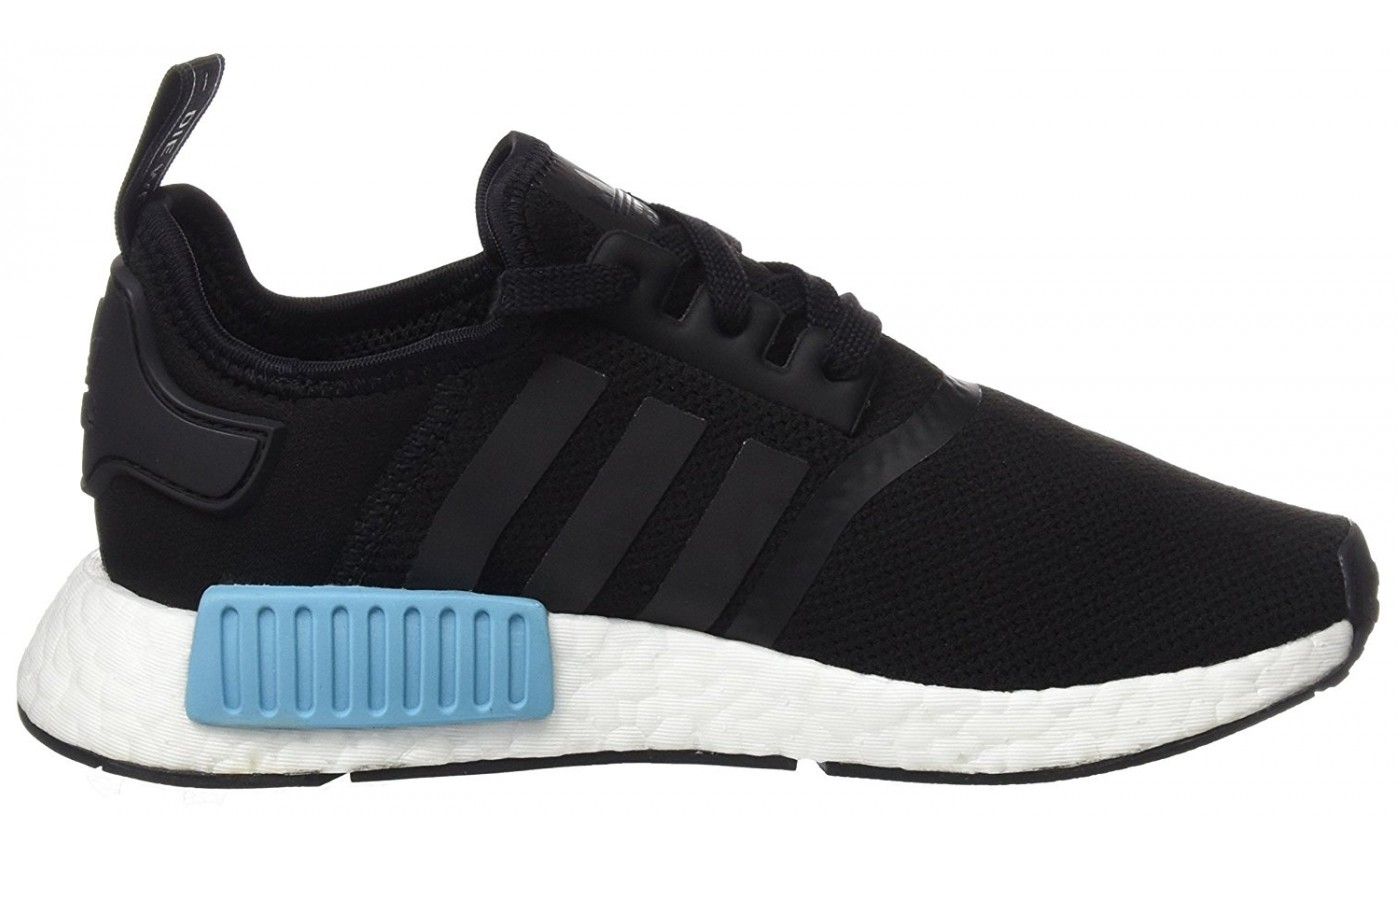 f42e92b14 Adidas NMD R1 Reviewed   Tested for Performance in 2019